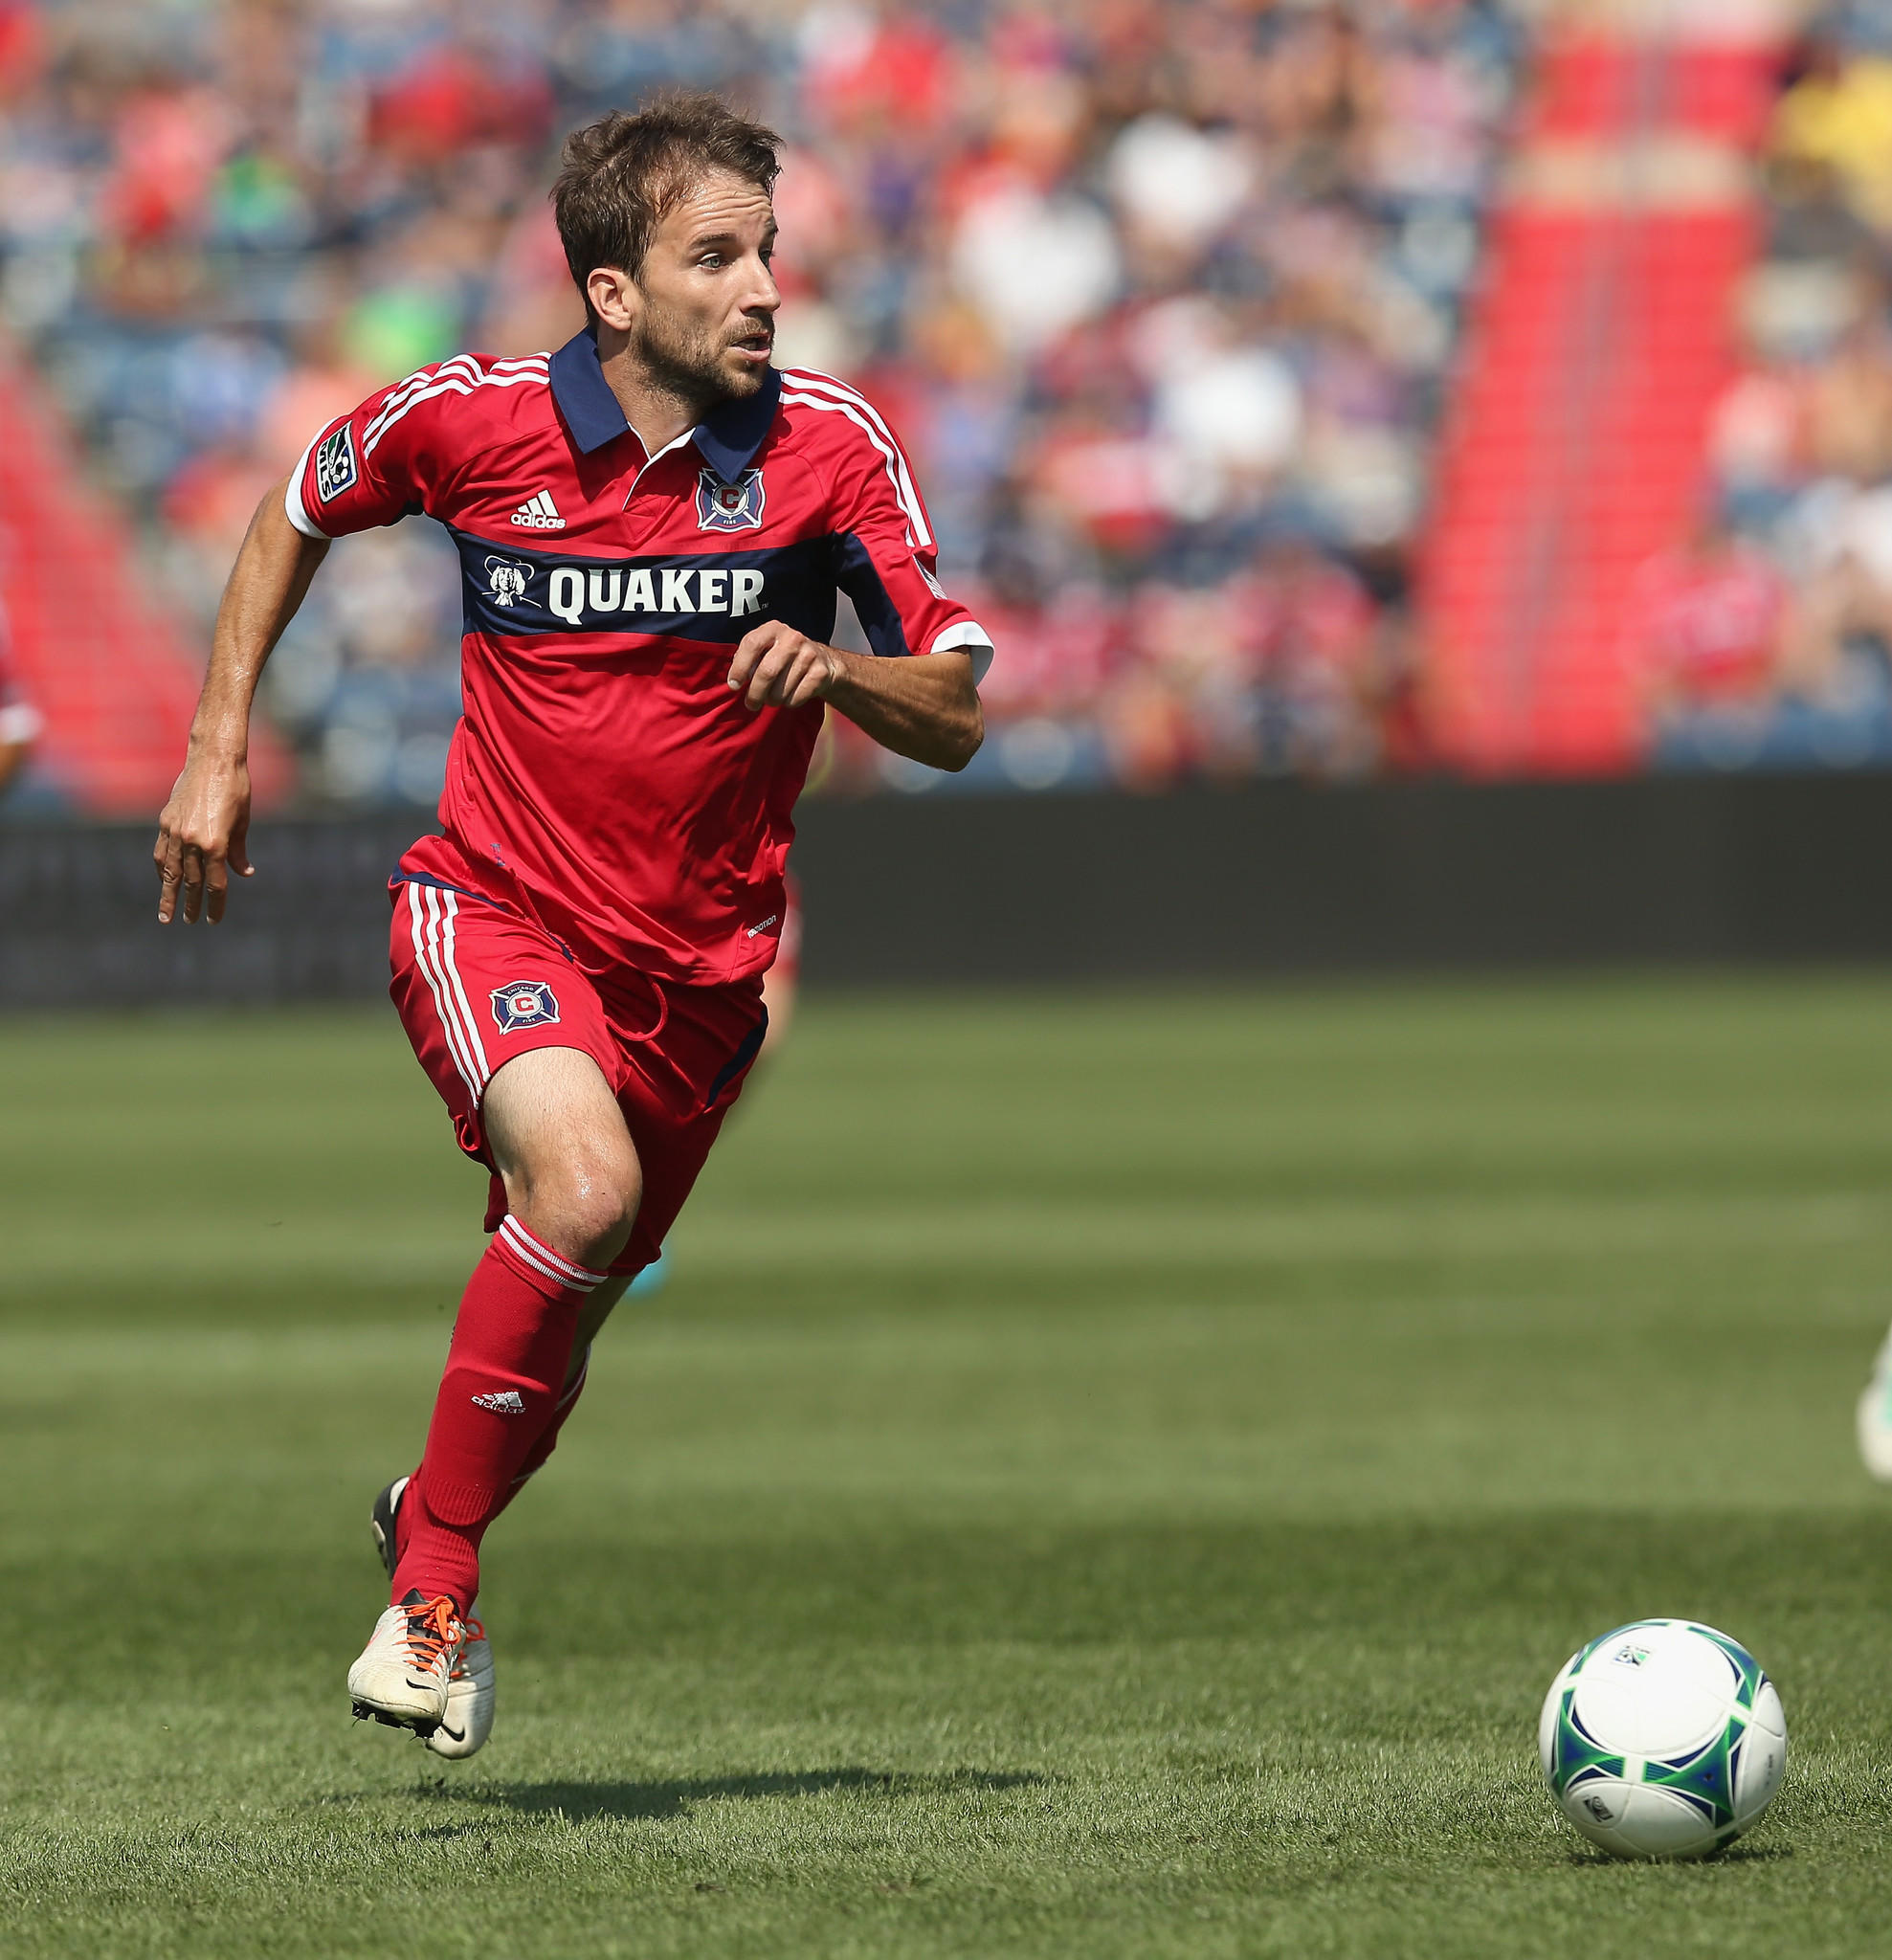 Mike Magee (9) of the Chicago Fire moves a against the Houston Dynamo during an MLS match at Toyota Park on September 1, 2013 in Bridgeview, Illinois. The Fire and the Dynamo tied 1-1.